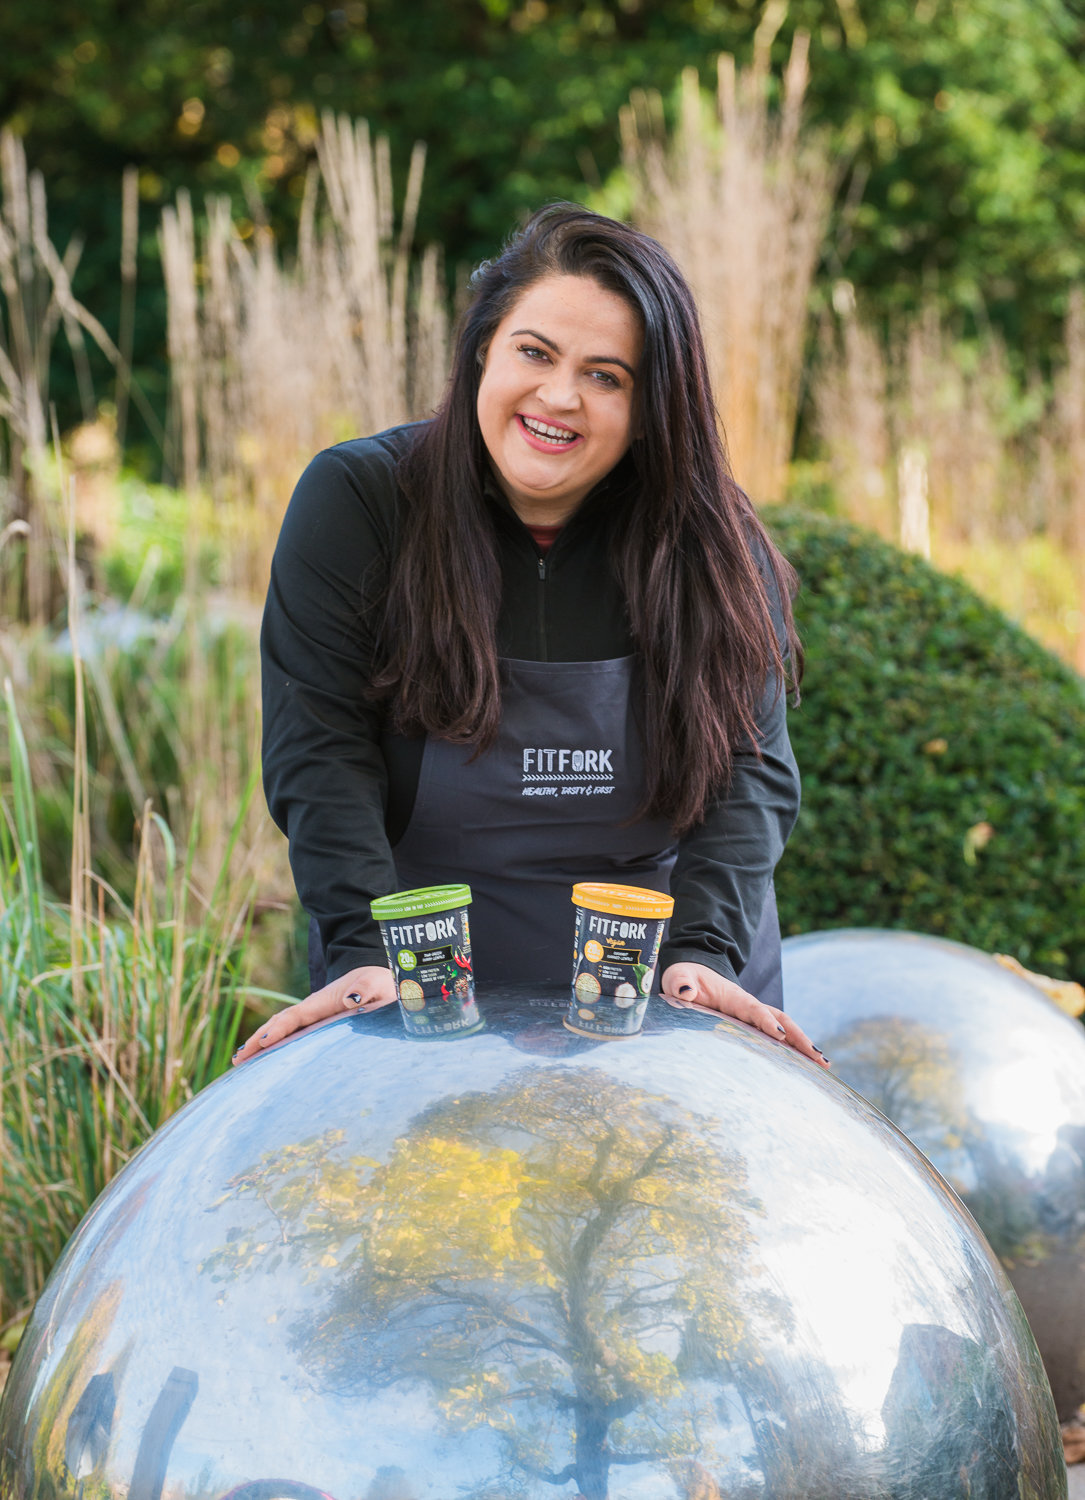 Female chef with black hair in a park promoting healthy food